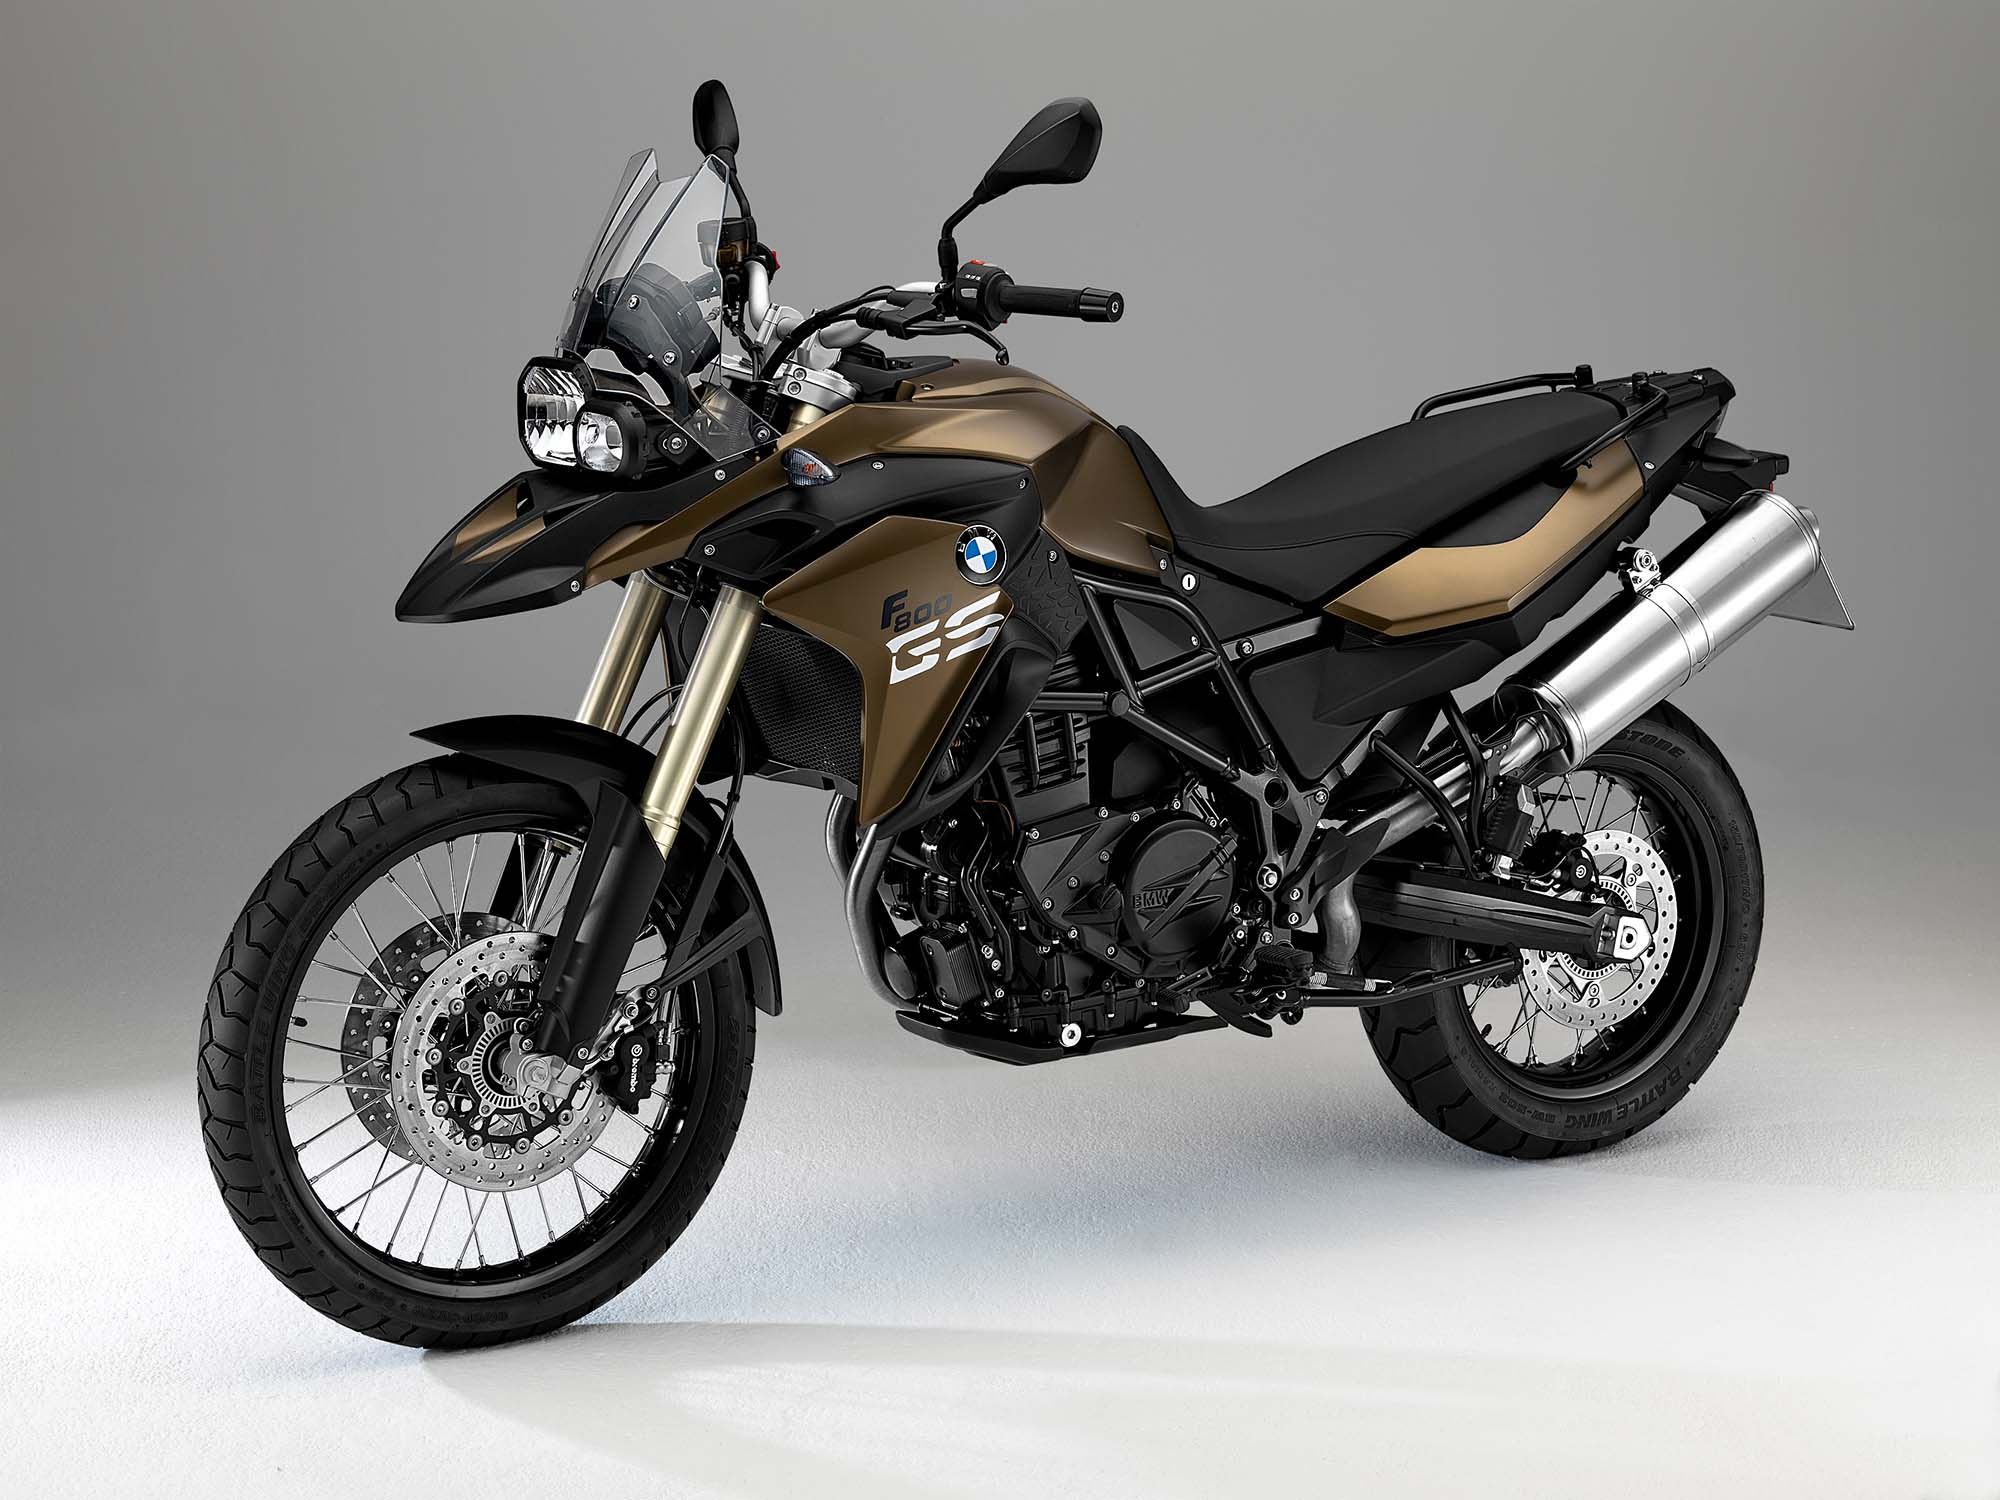 2013 bmw f800gs gets modest updates asphalt rubber. Black Bedroom Furniture Sets. Home Design Ideas